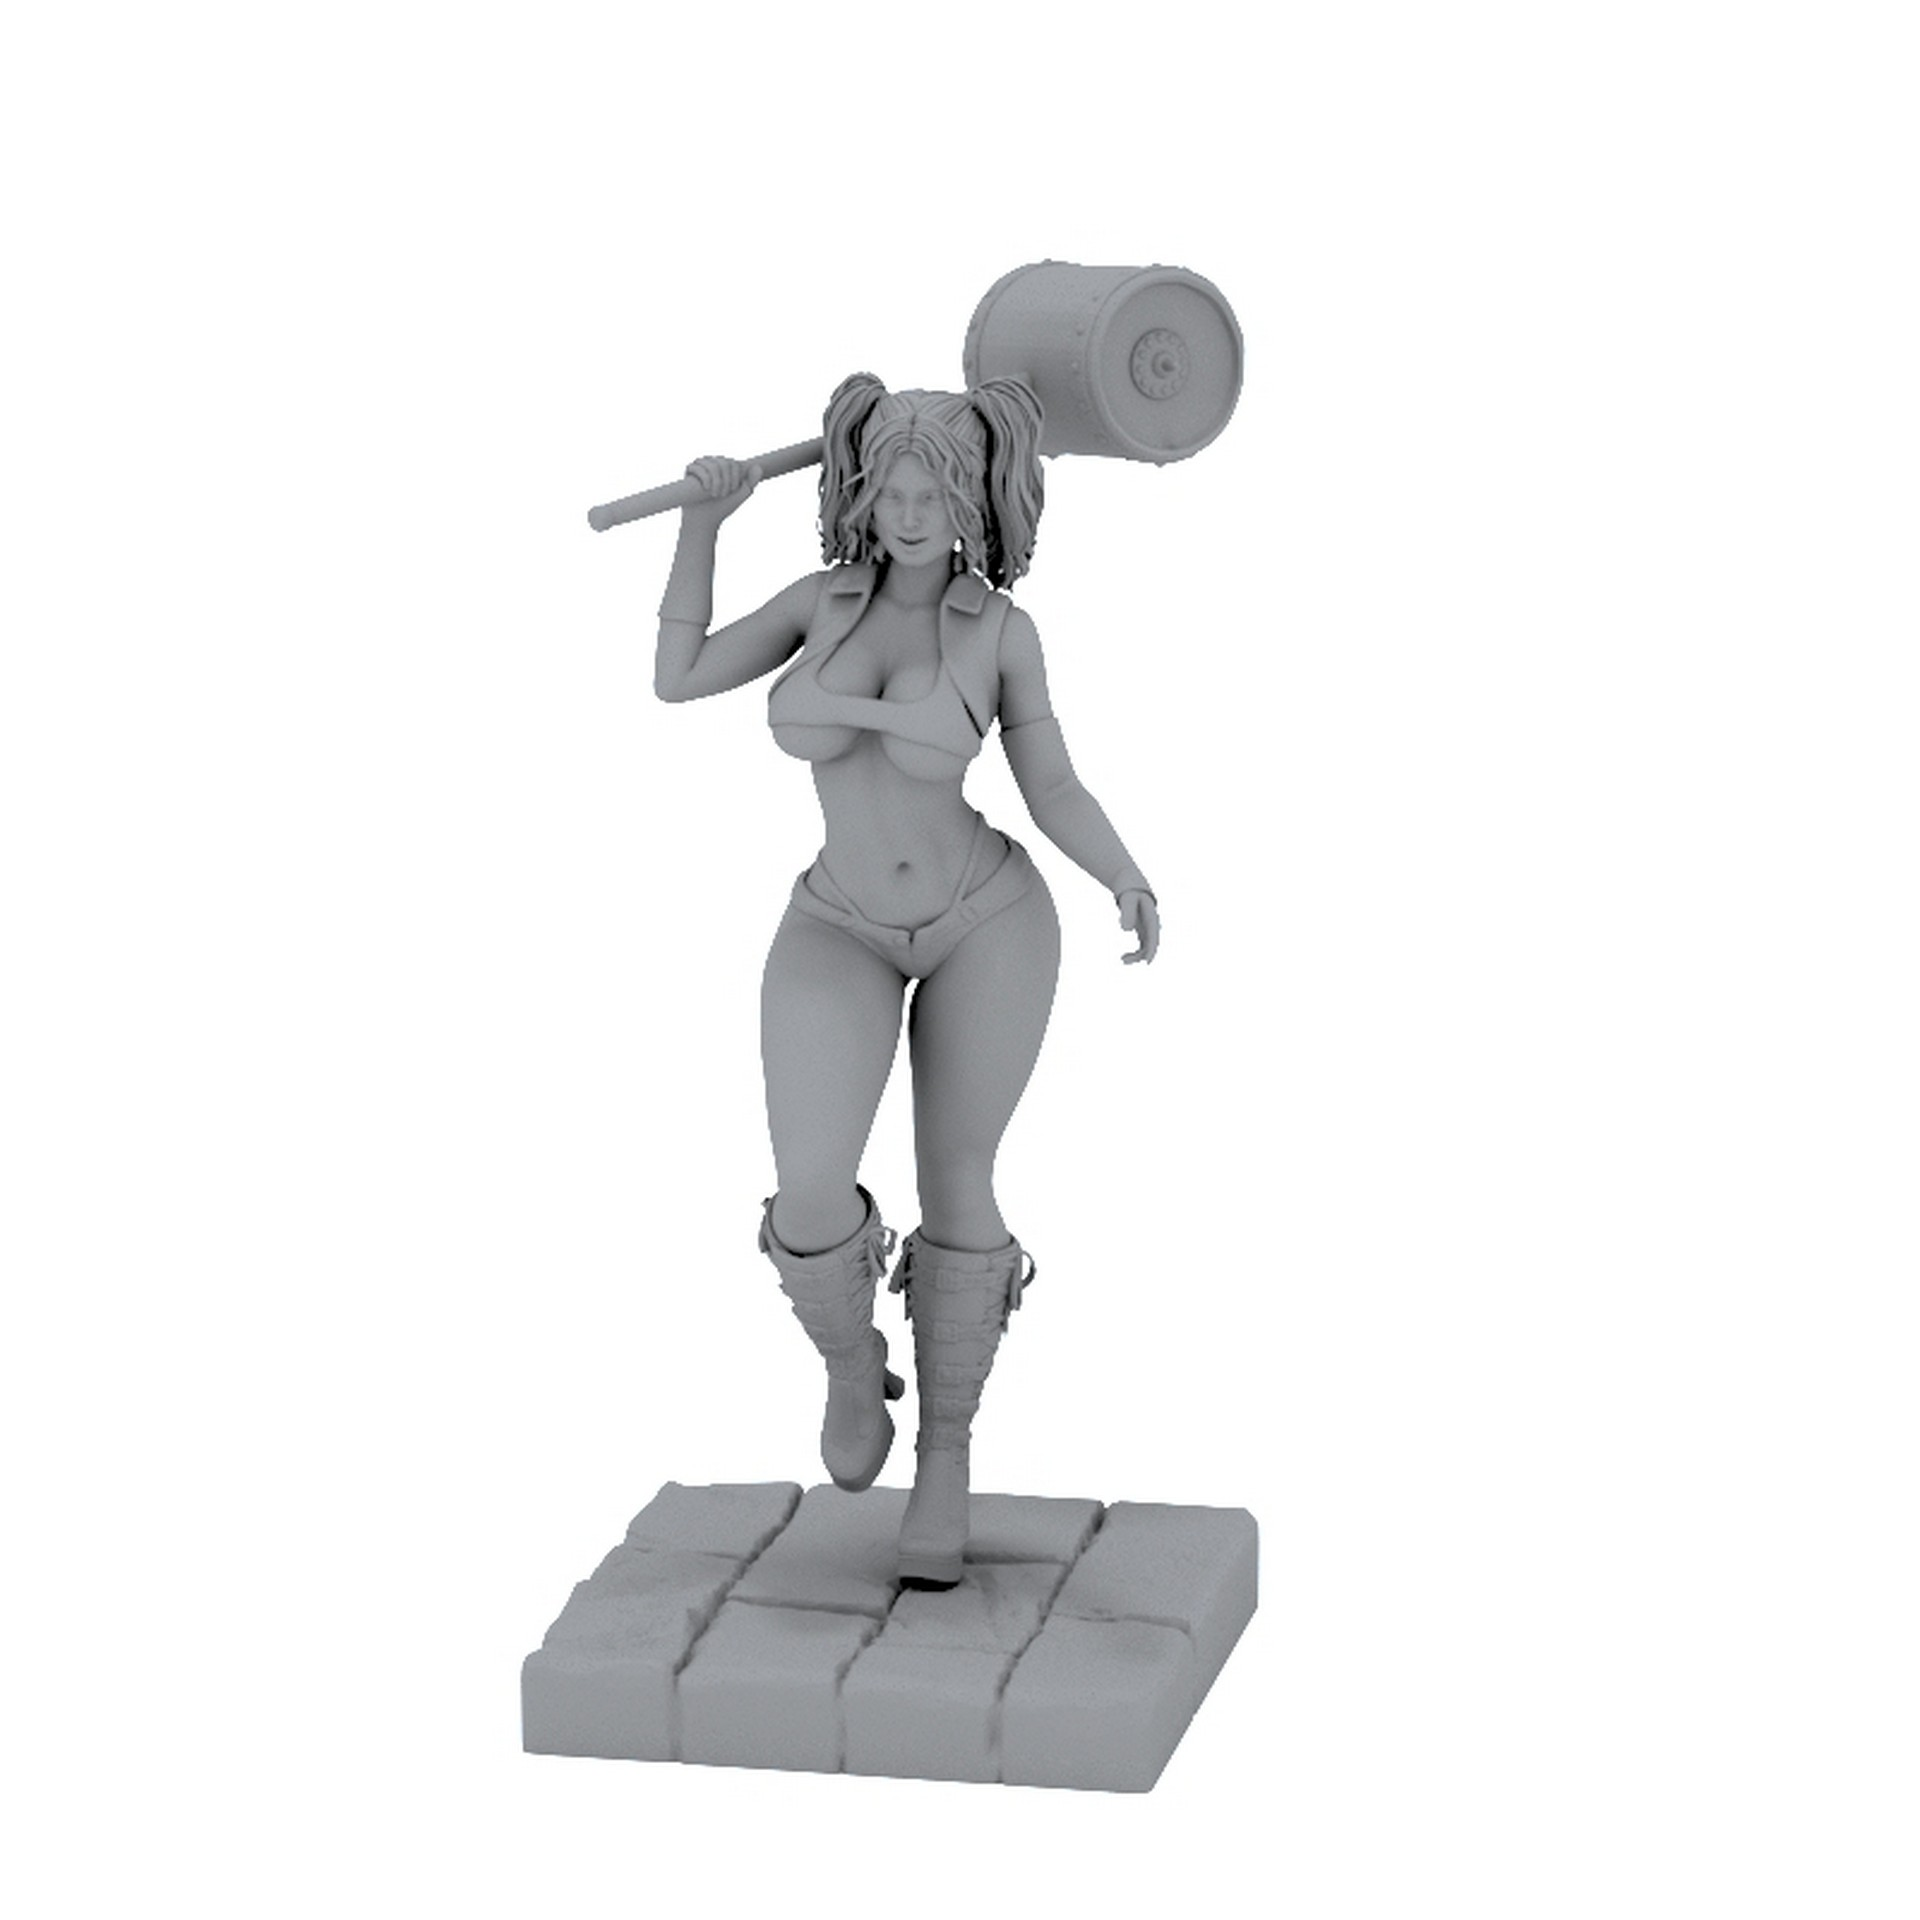 harley quinn 3d model for printing download